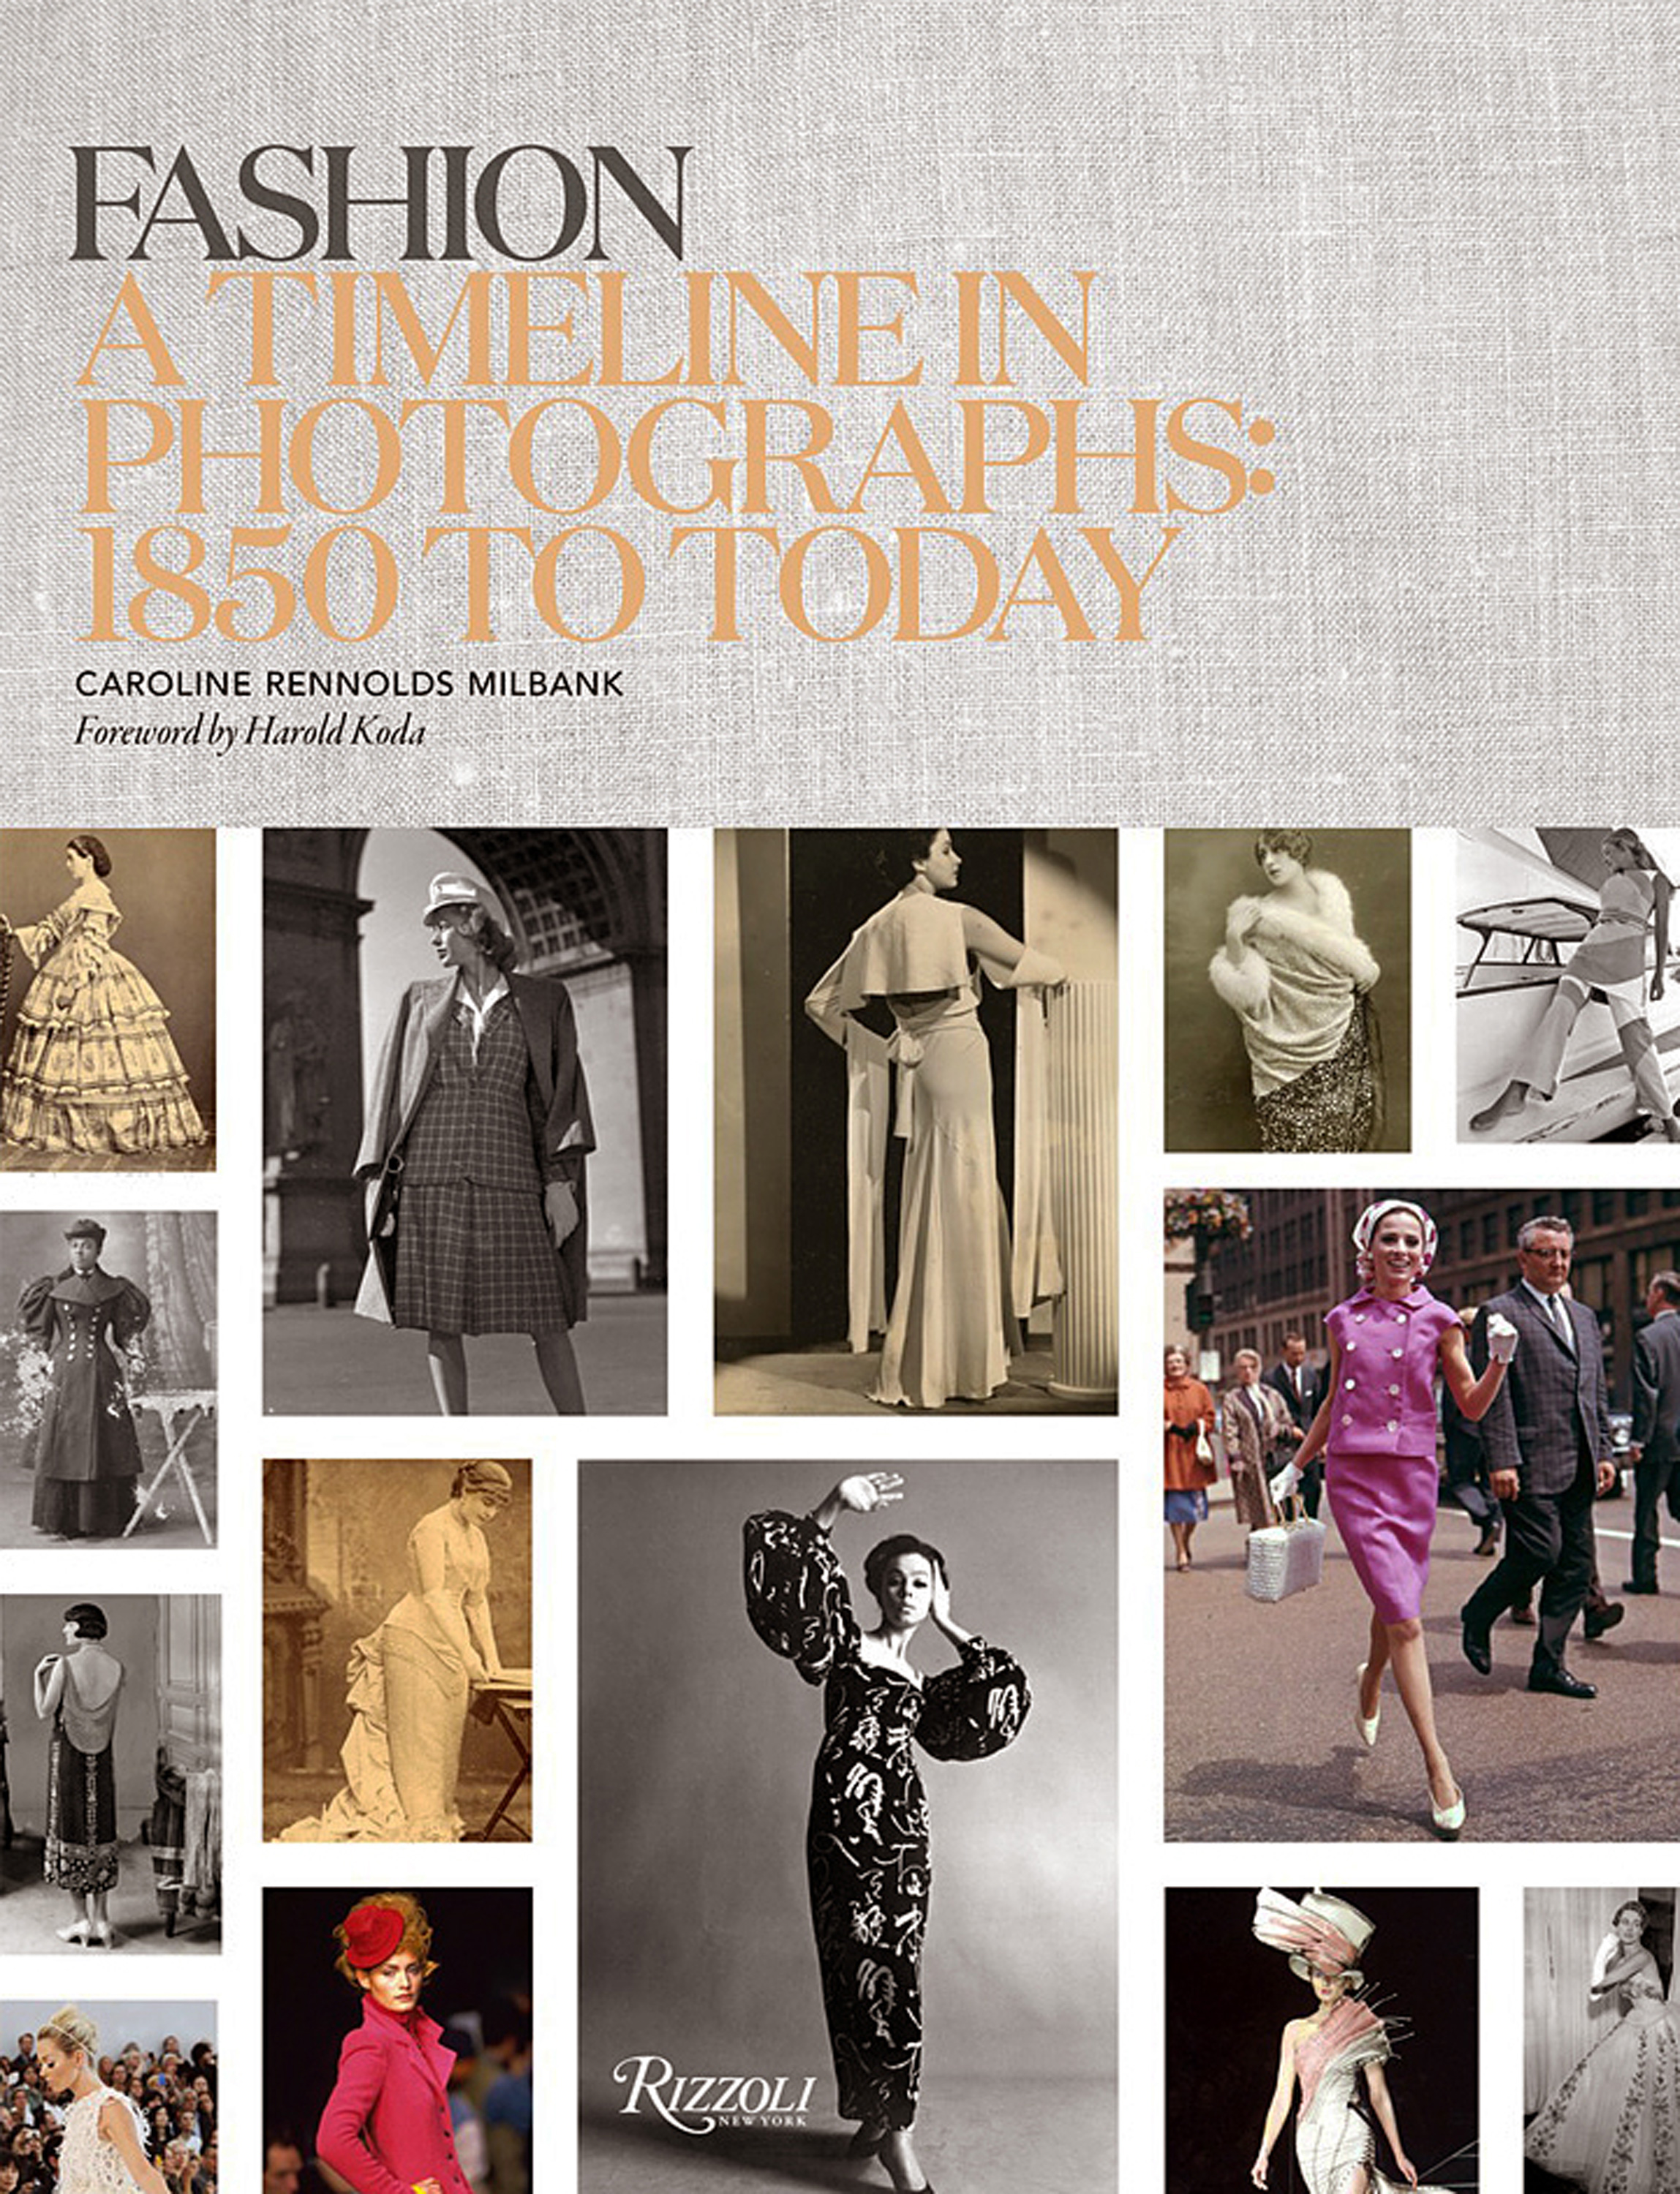 Timeline of fashion photography 50